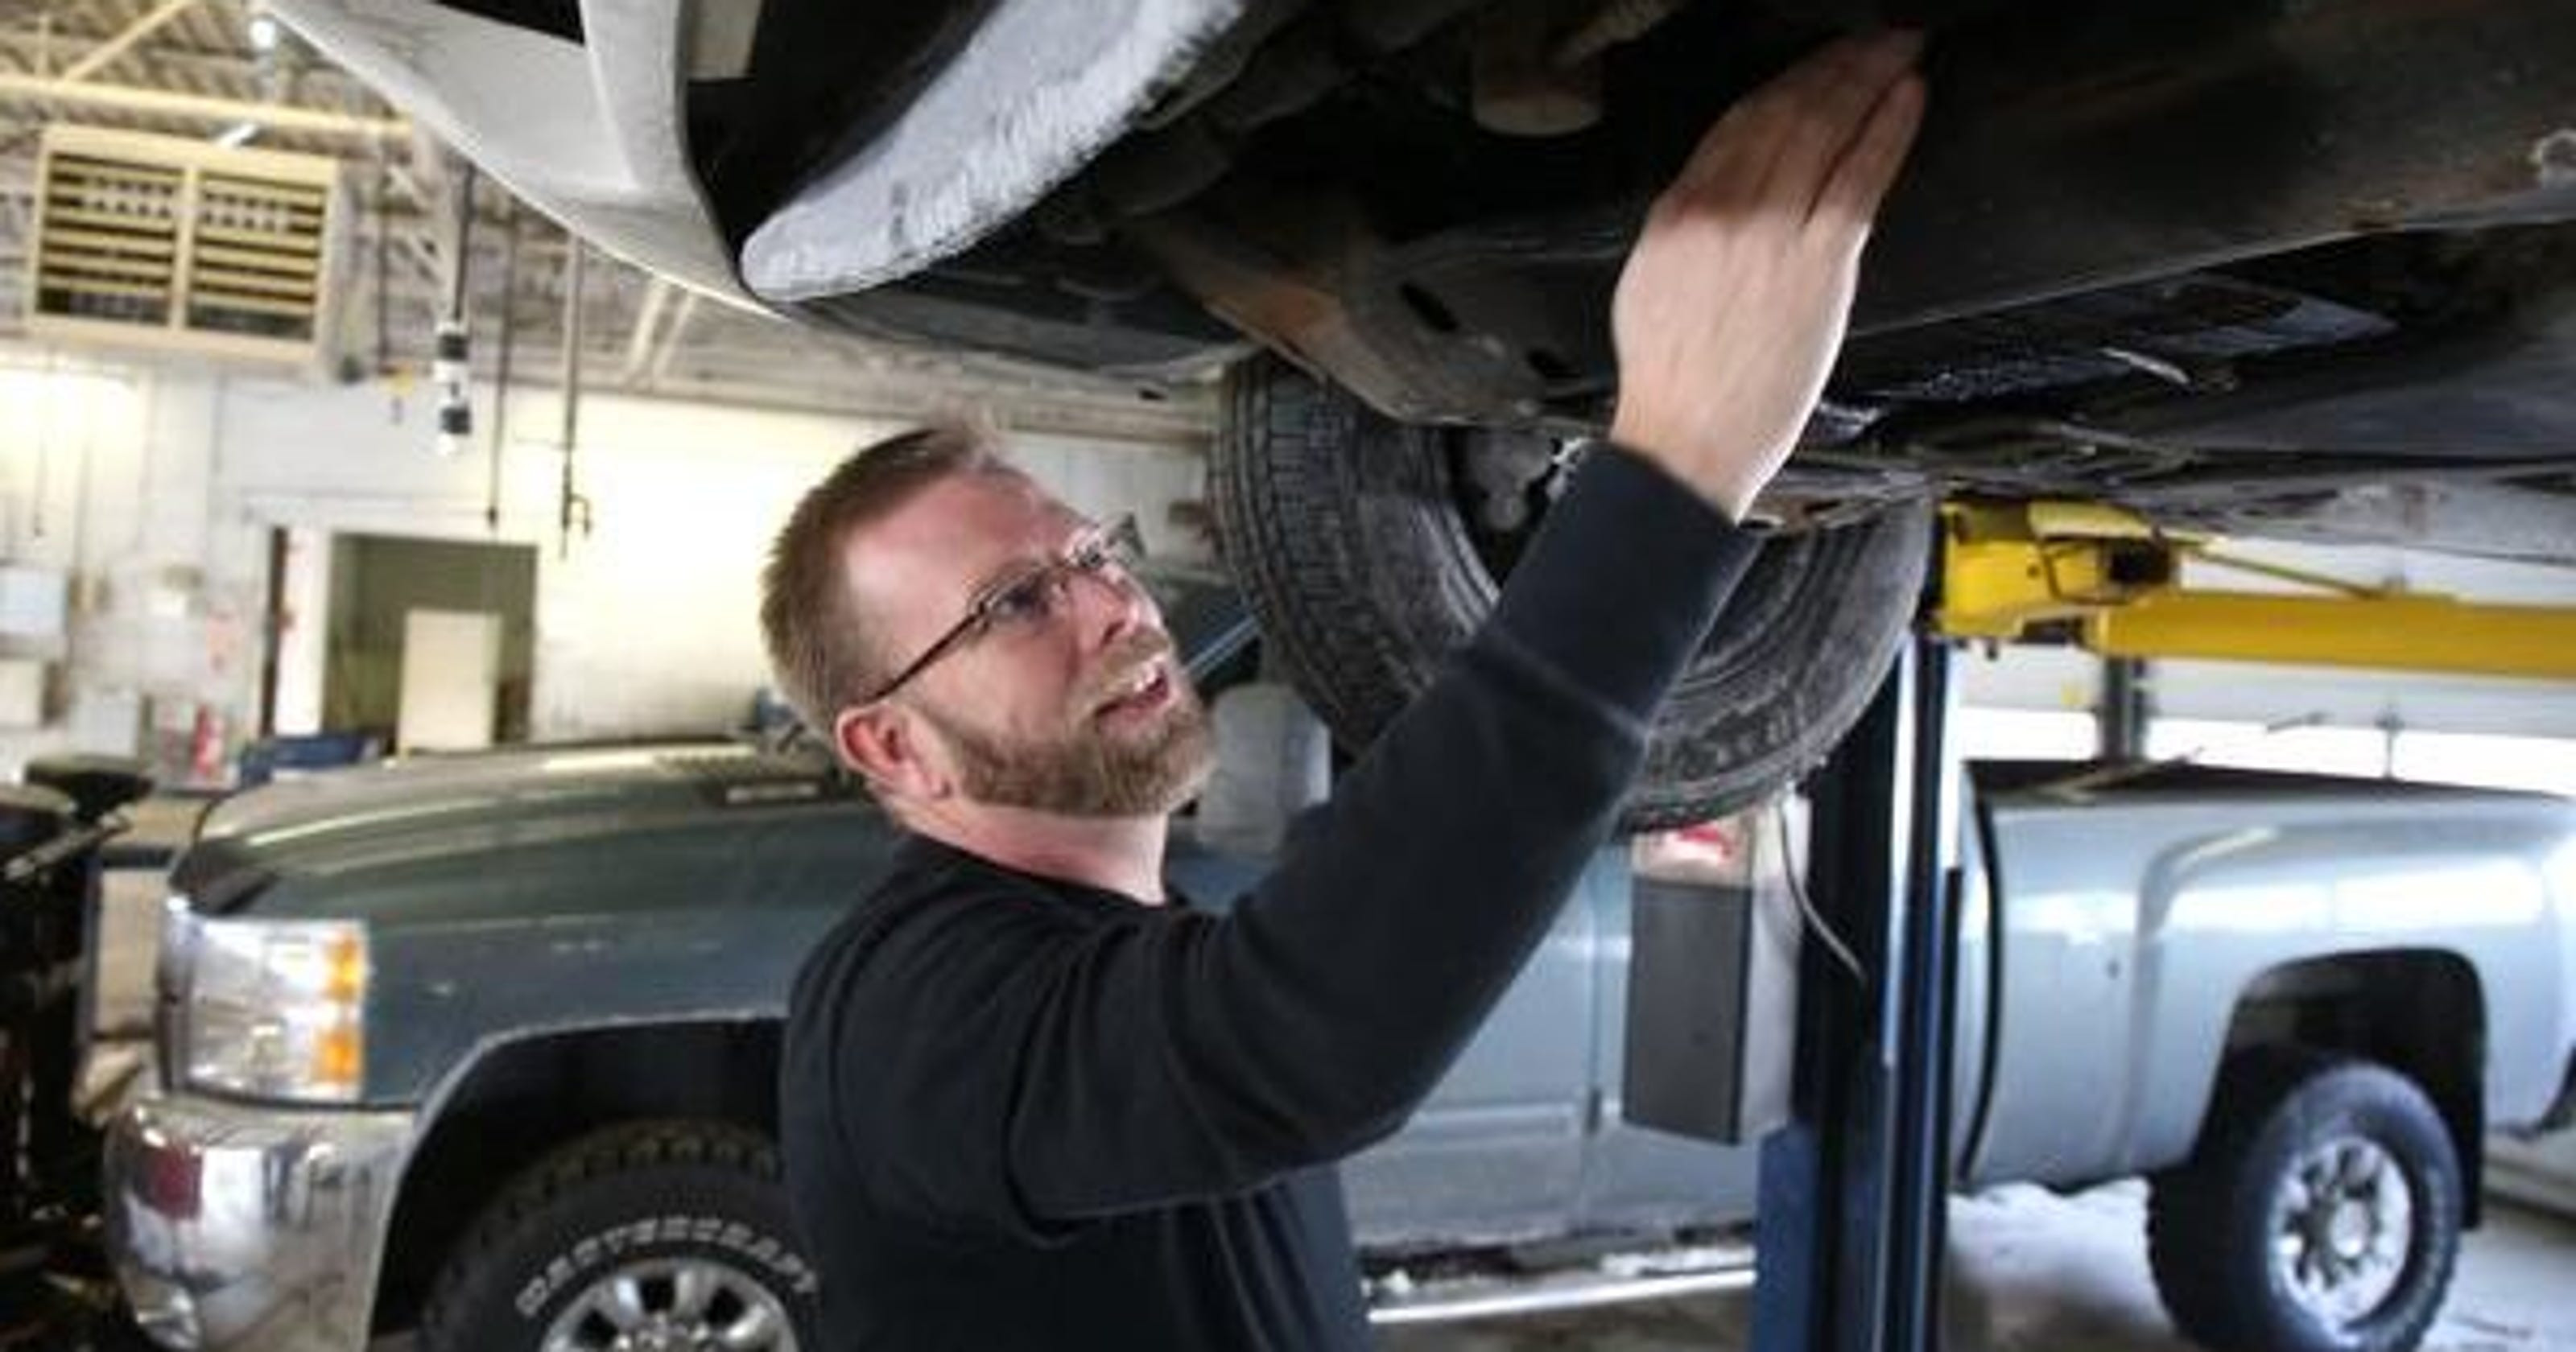 Best ideas about DIY Automotive Garage . Save or Pin Self serve auto shops cater to DIY mechanics Now.